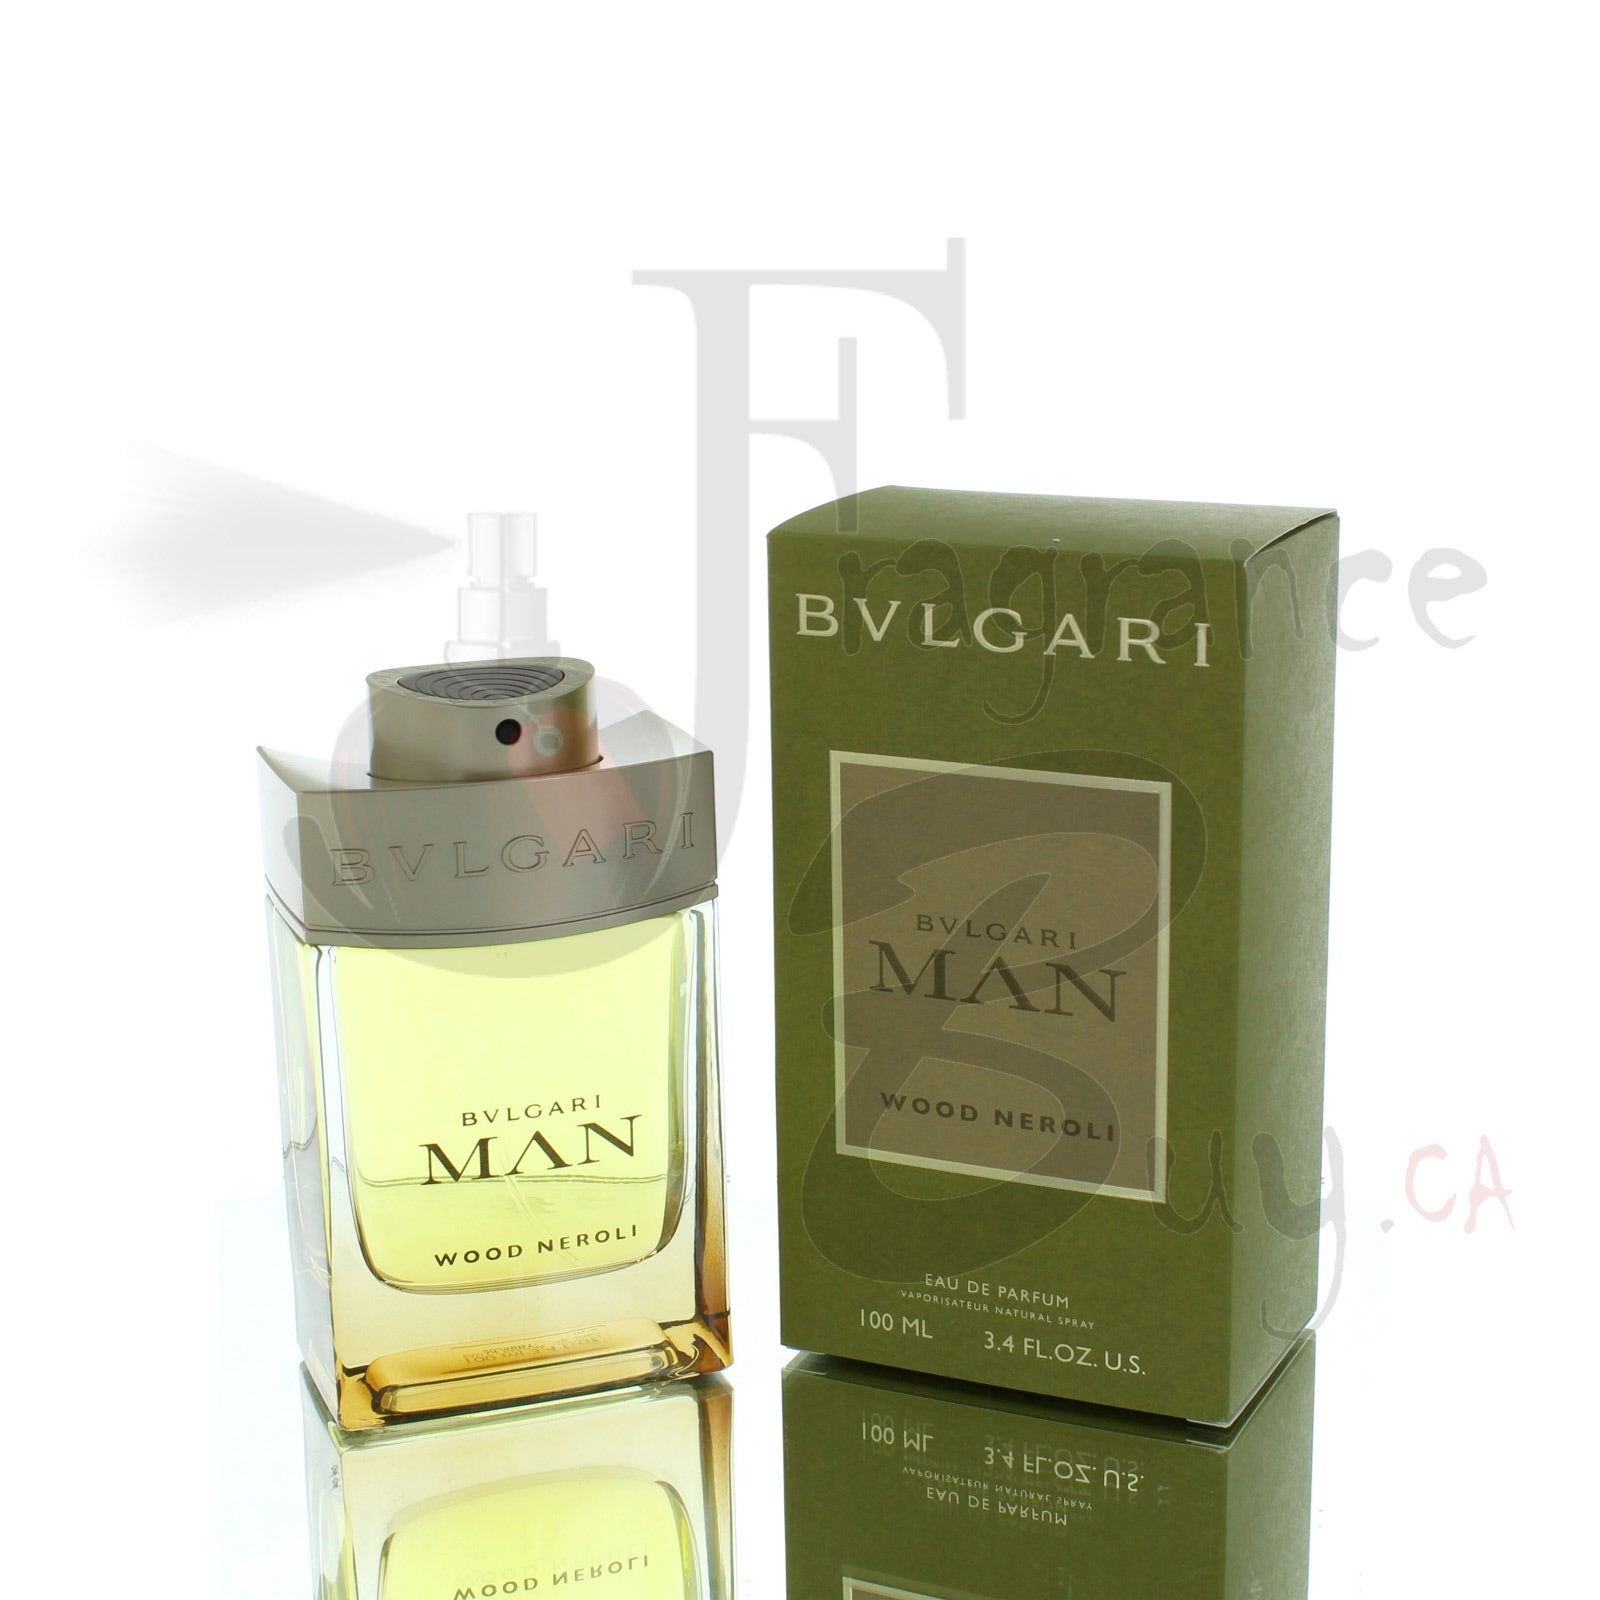 Bvlgari Man Wood Neroli For Man